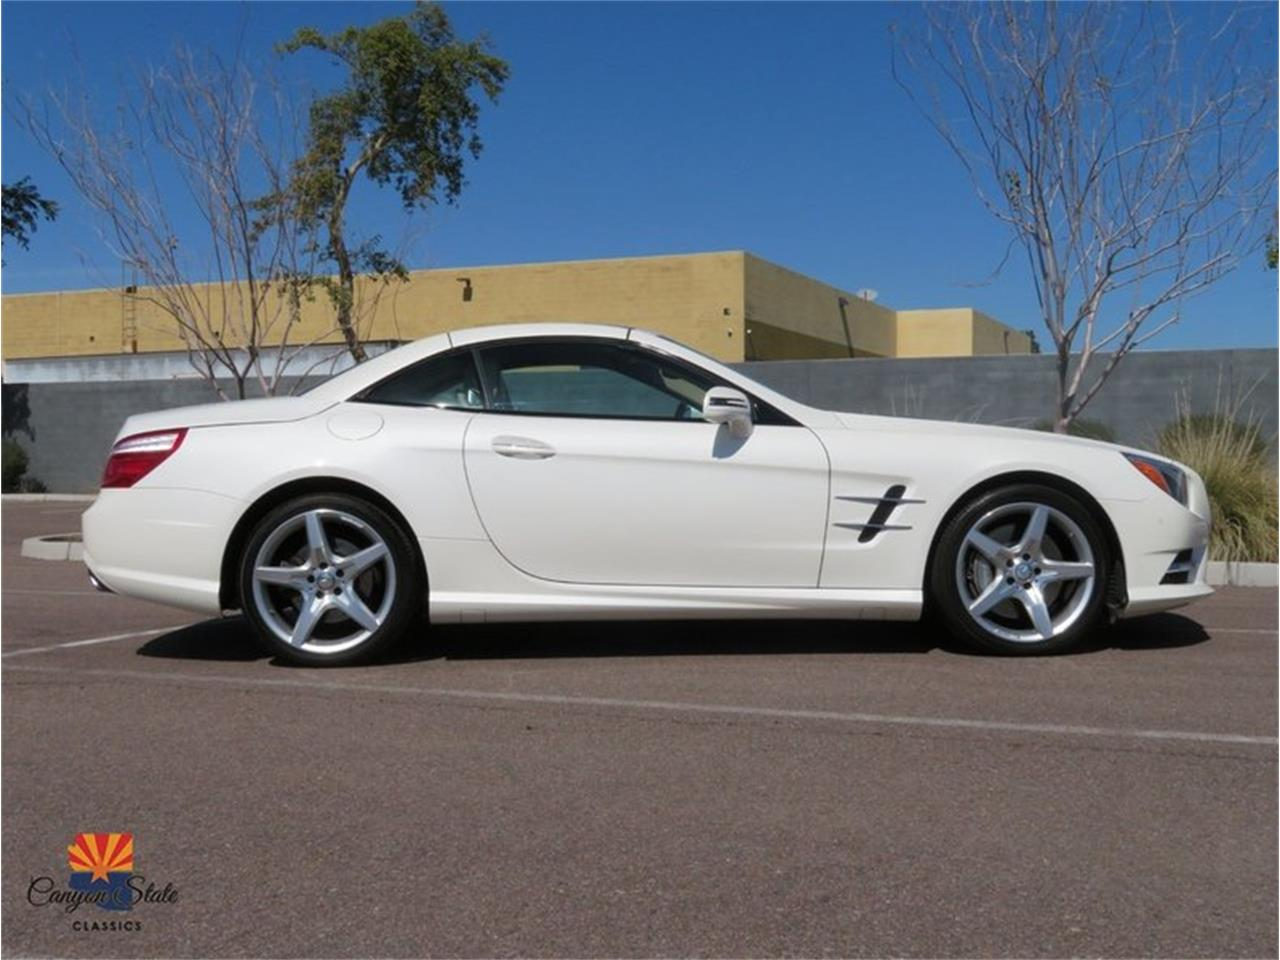 2013 Mercedes-Benz SL-Class for sale in Tempe, AZ – photo 70